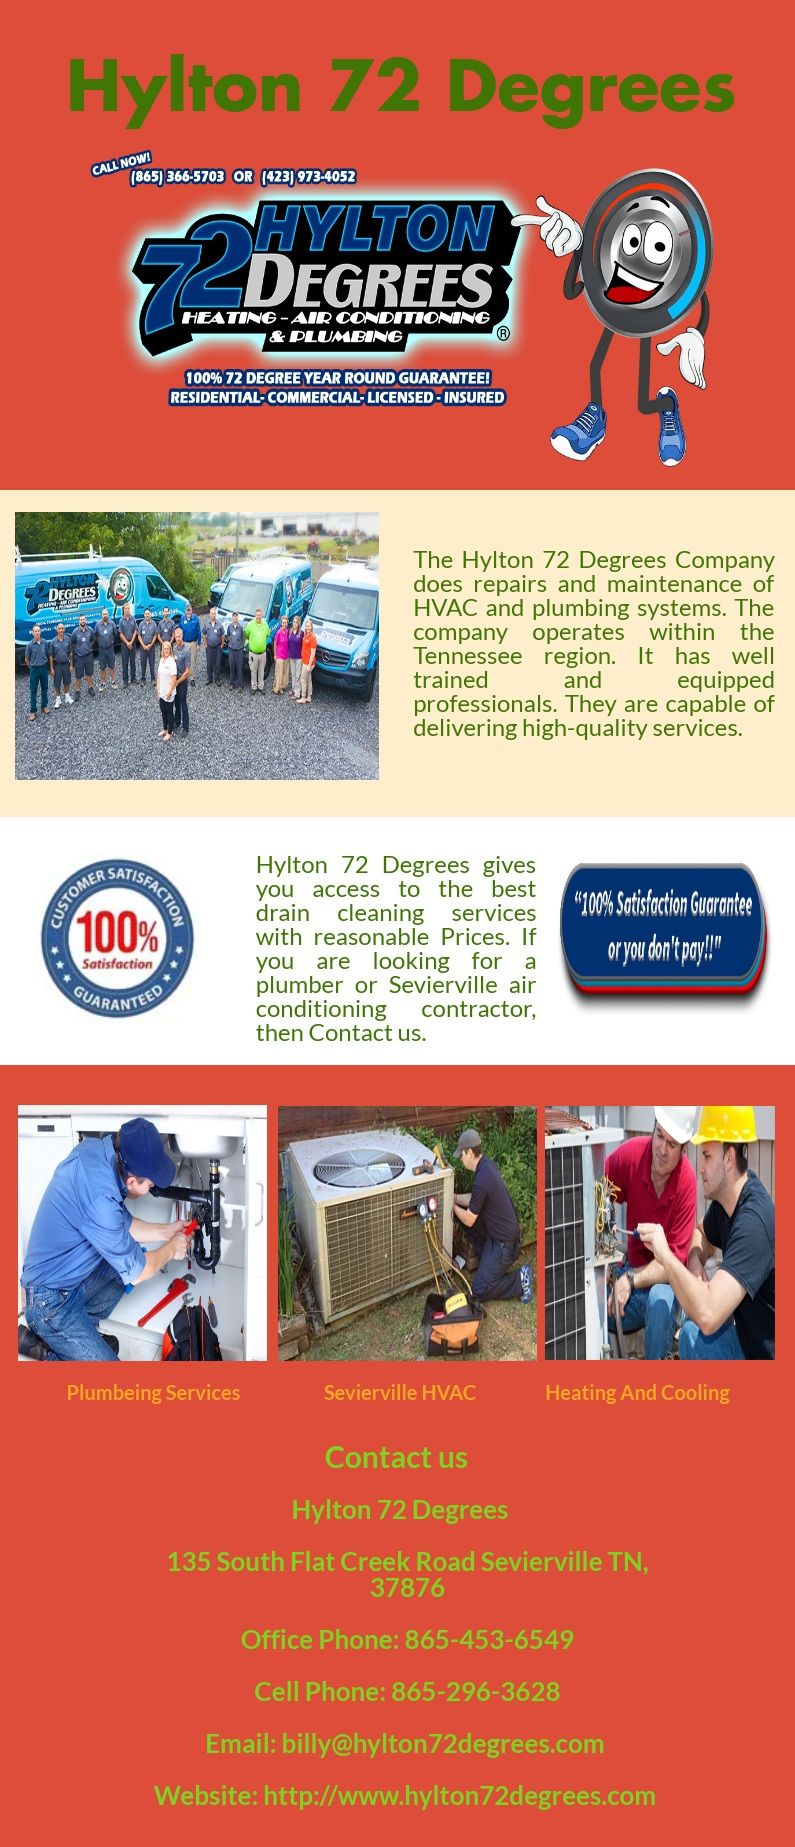 The Hylton 72 Degrees Company Does Repairs And Maintenance Of Hvac